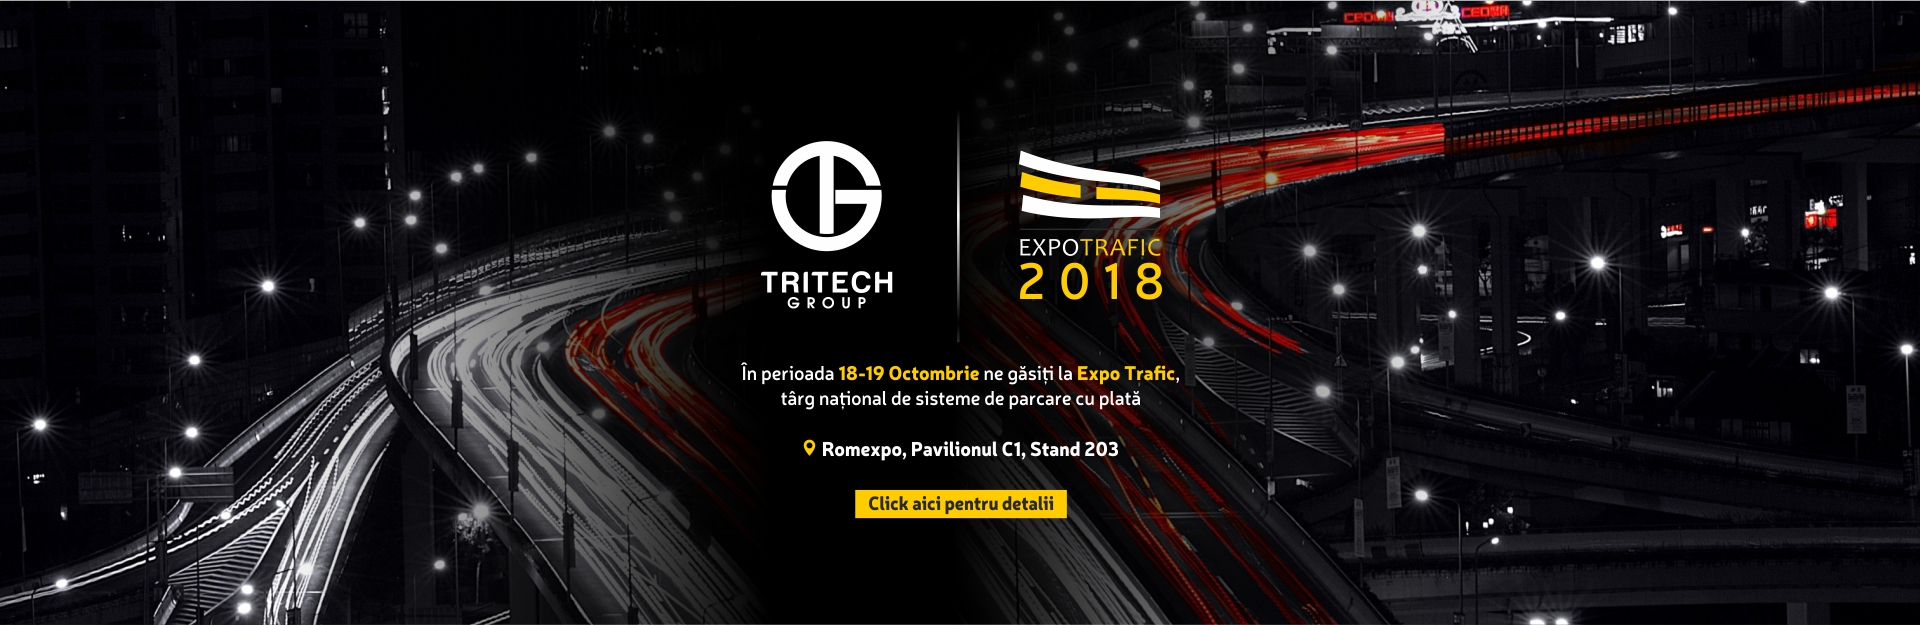 Expotrafic 2018 Tritech Group